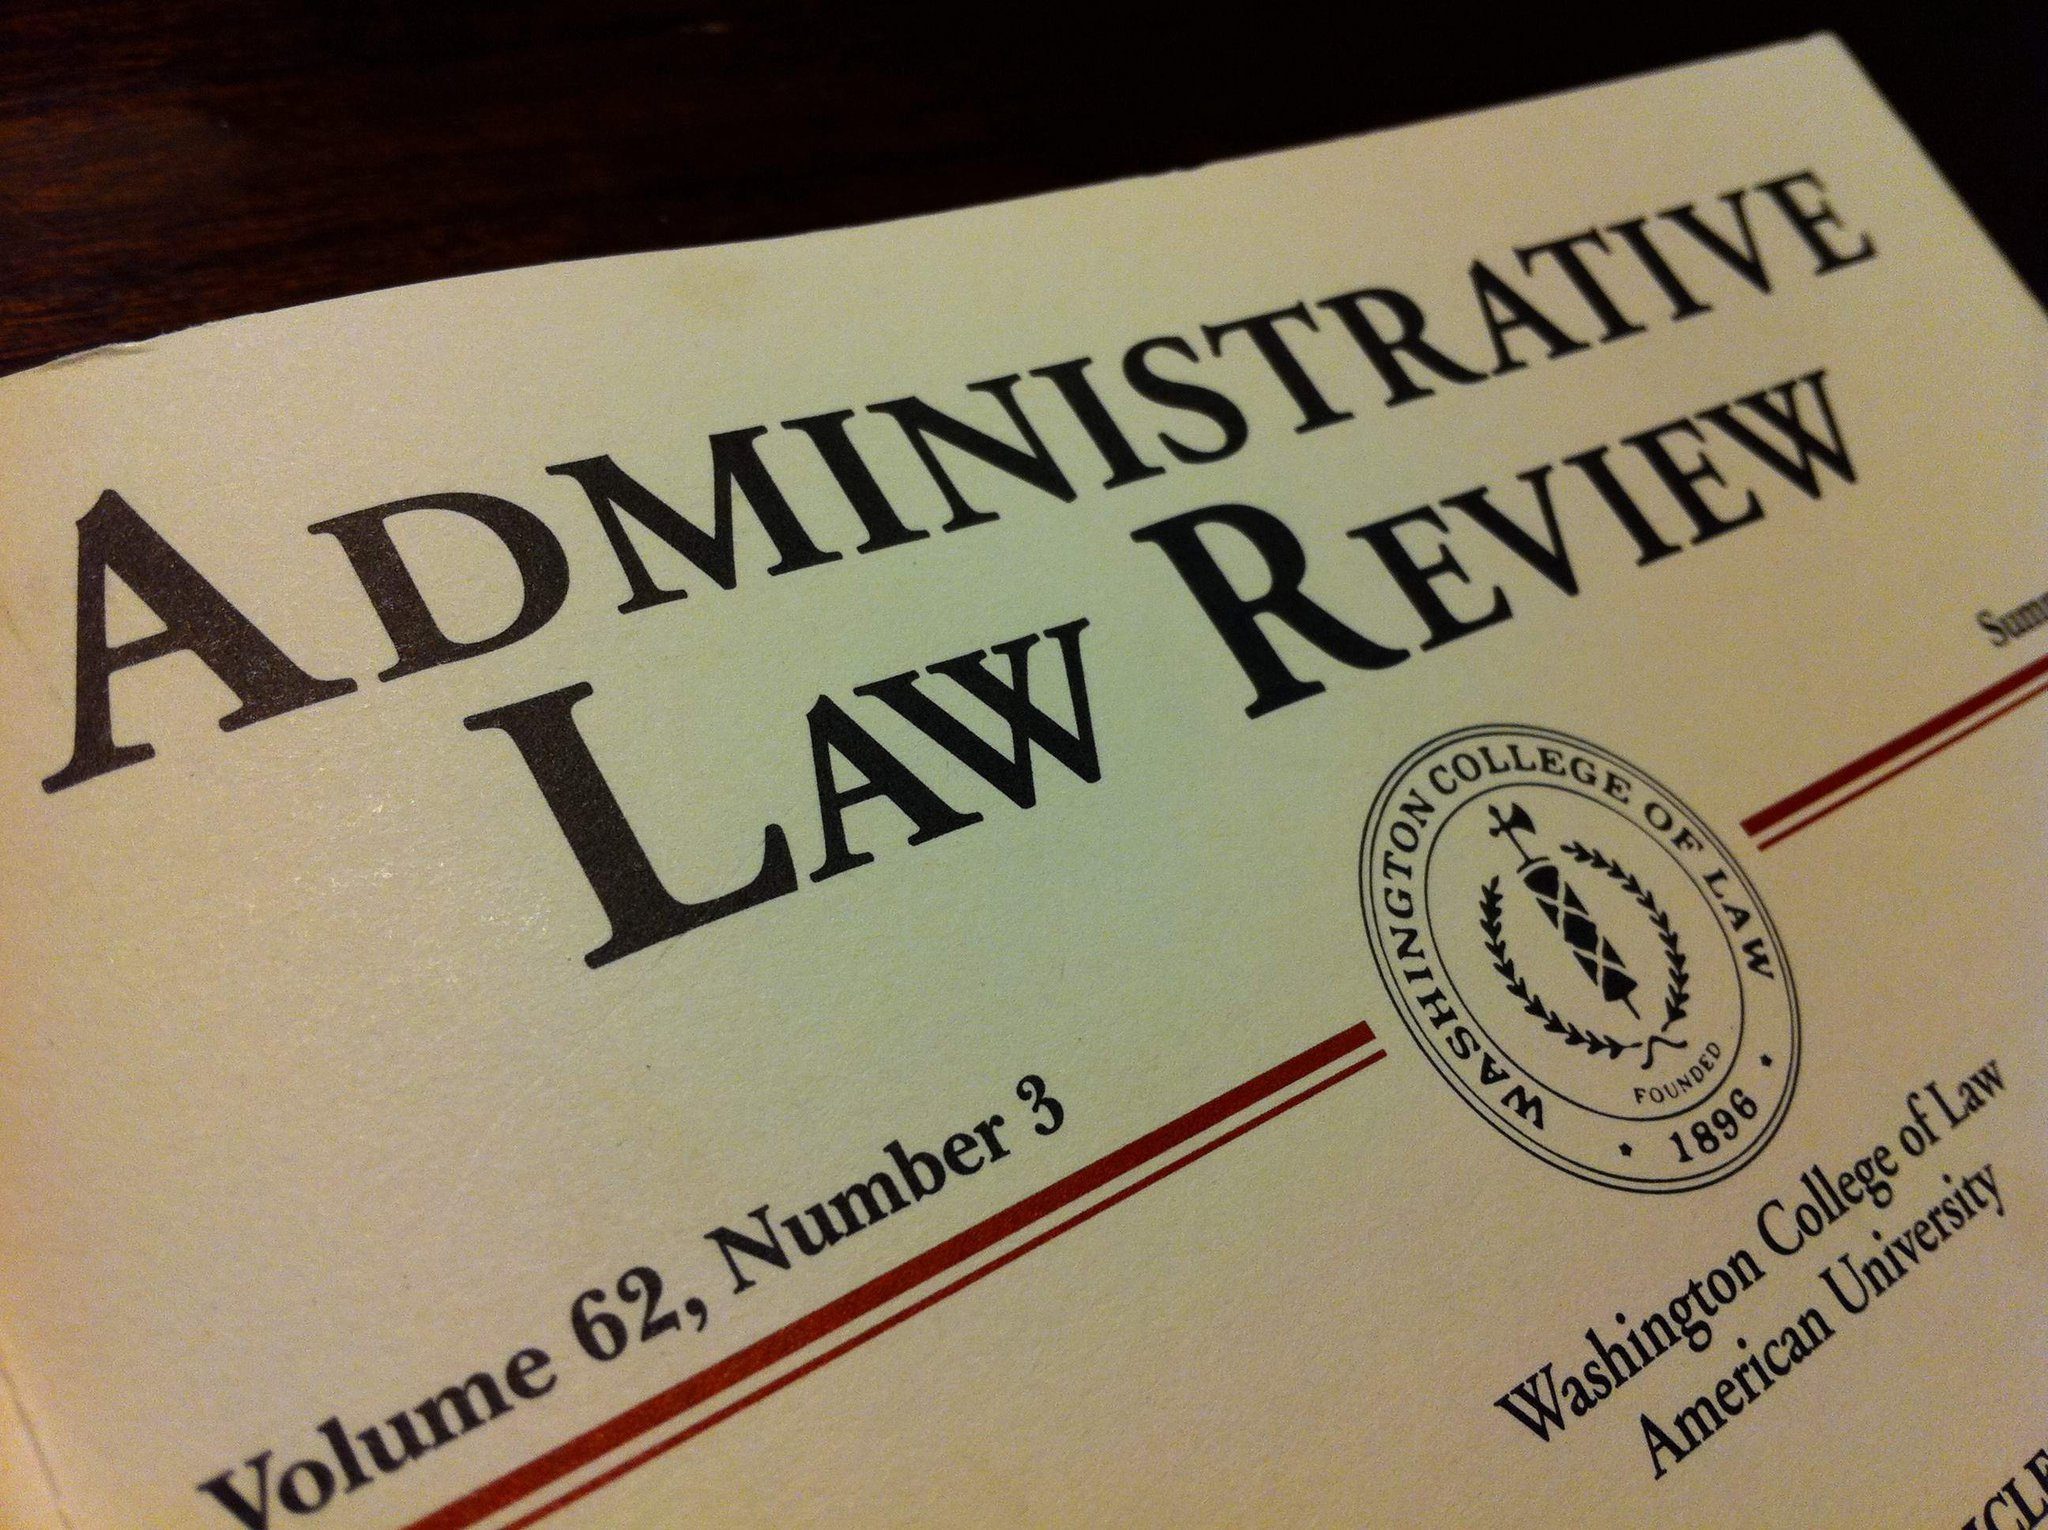 Administrative Law Review